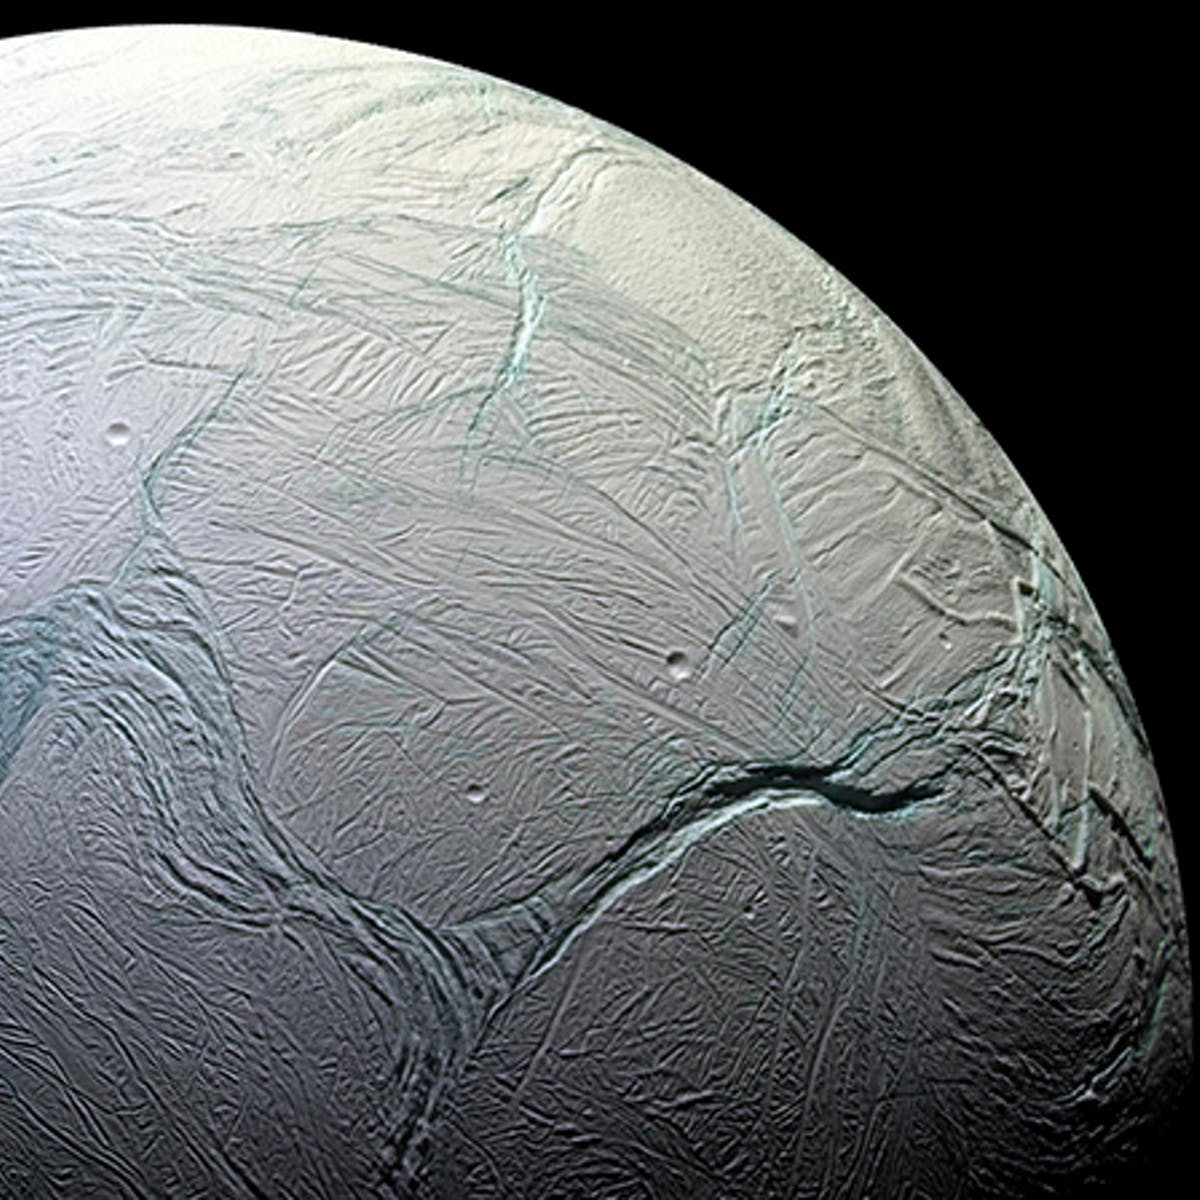 Scientists uncover the strange tale of how Enceladus got its stripes